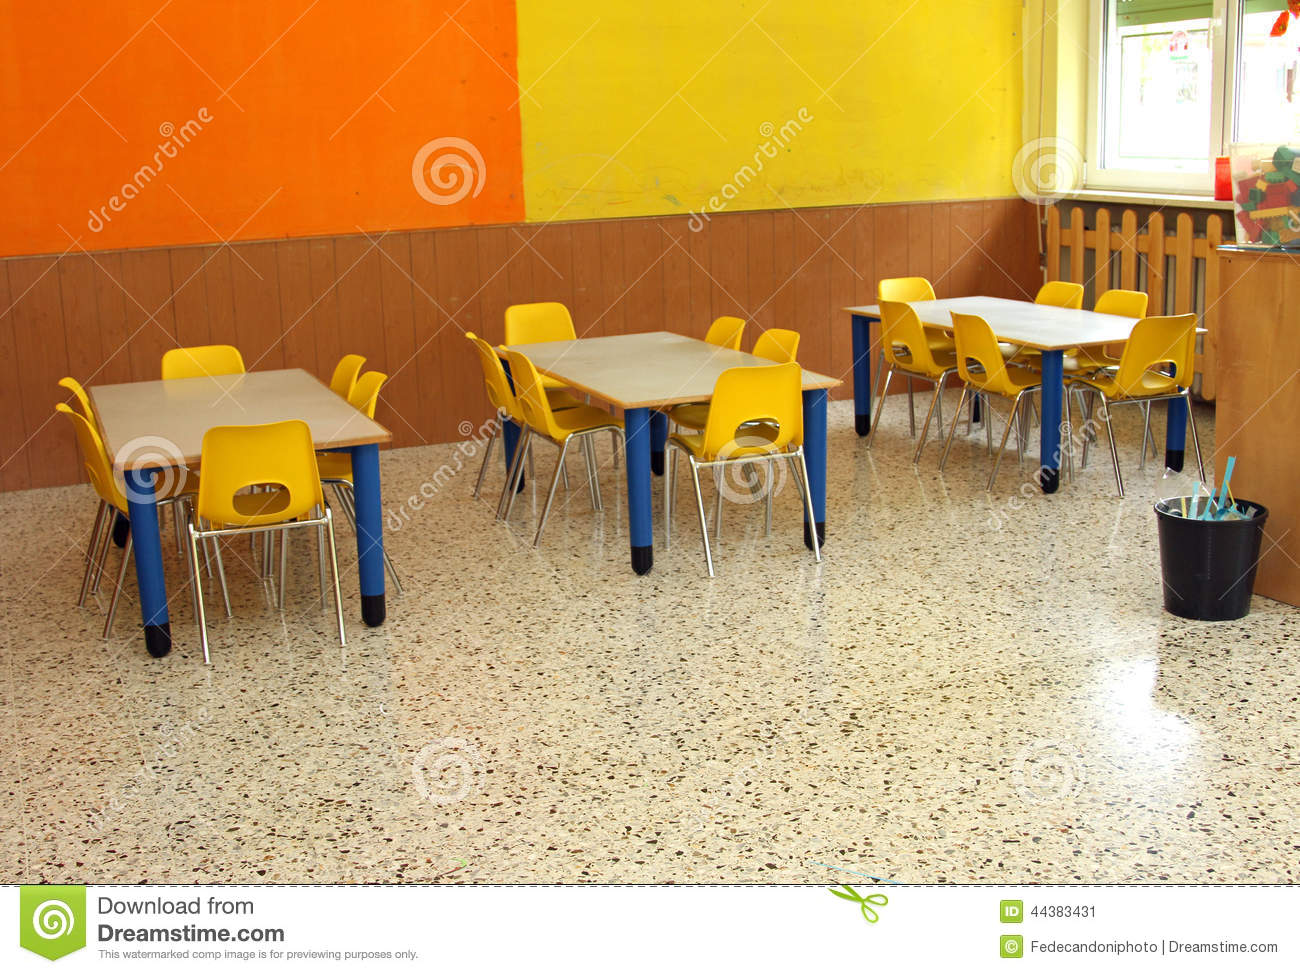 Kindergarten classroom table - Classroom With Table And Small Chairs In Kindergarten Stock Image